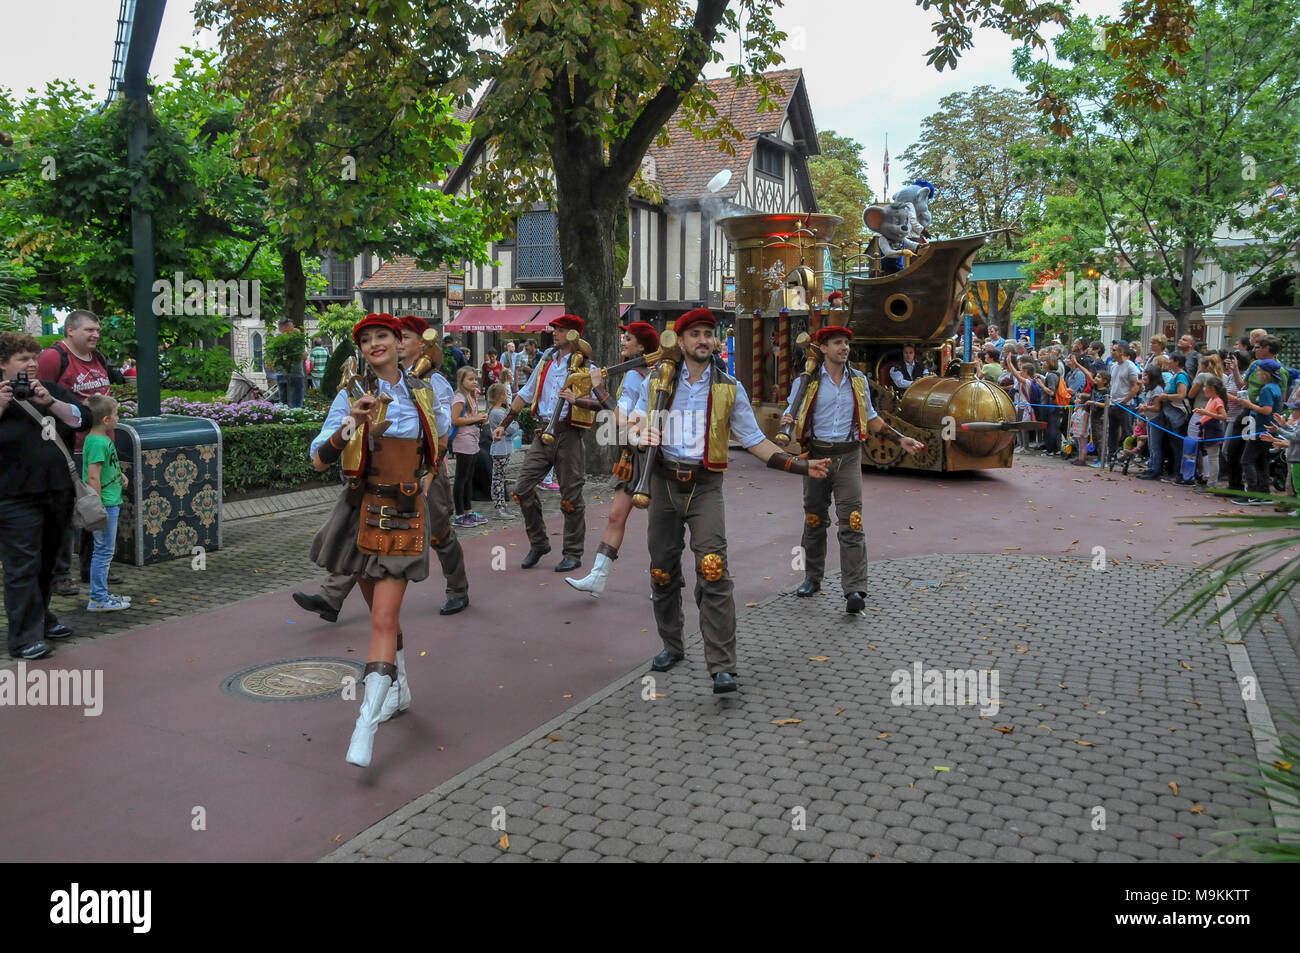 The Parade at Europa-Park is the largest theme park in Germany. is located at Rust between Freiburg and Strasbourg, France. - Stock Image